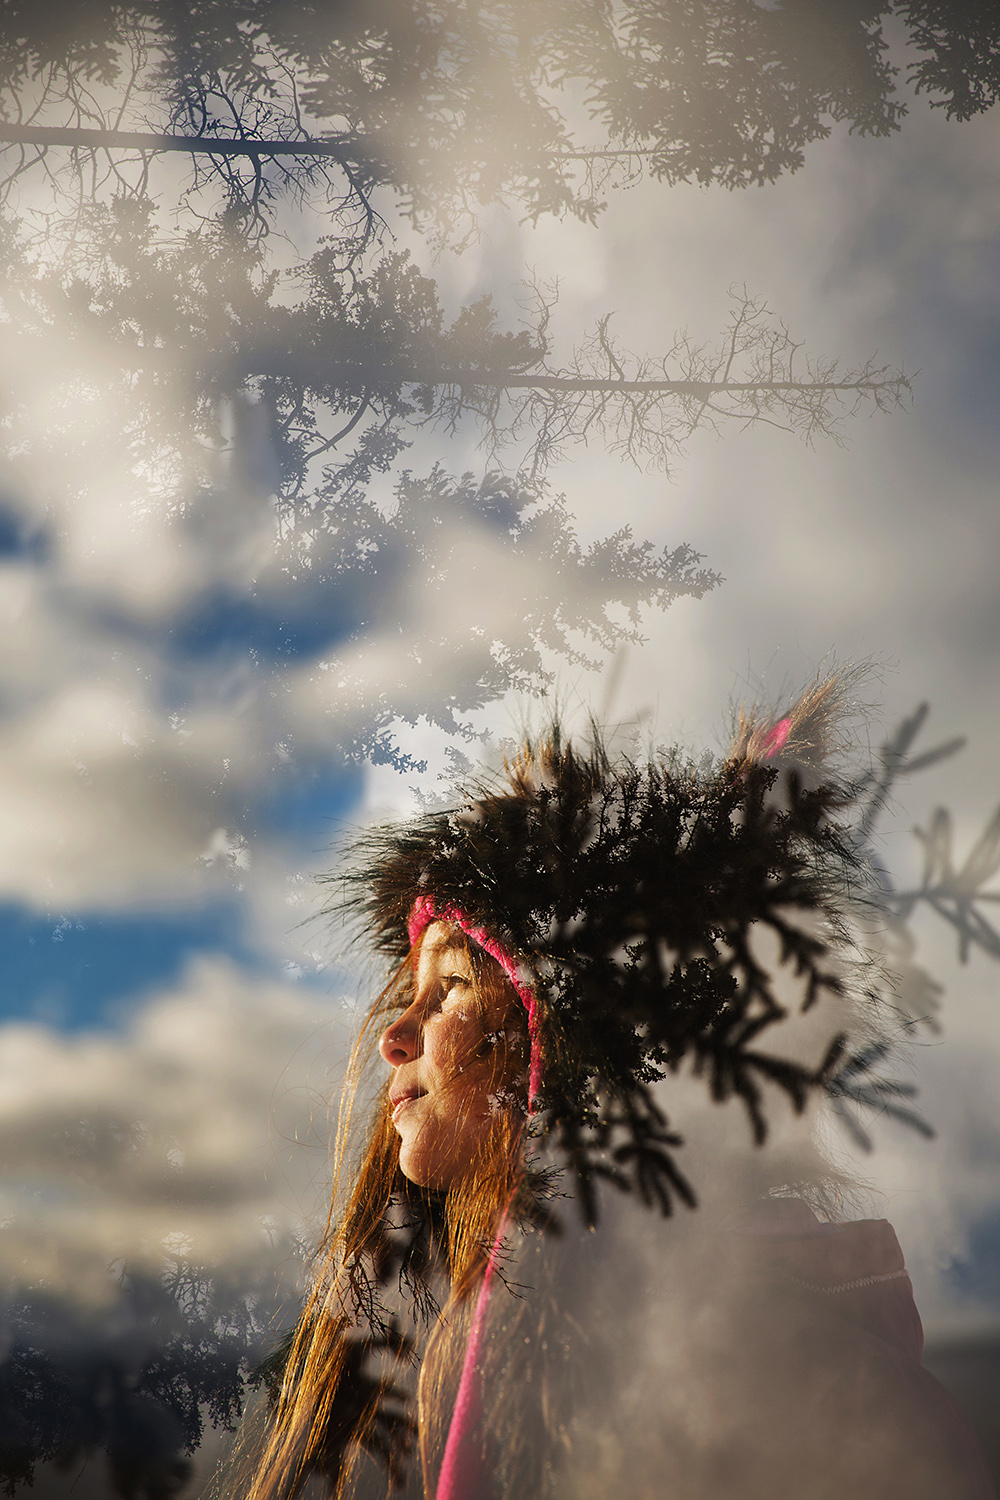 Double Exposure of a little girl and a winter skyline